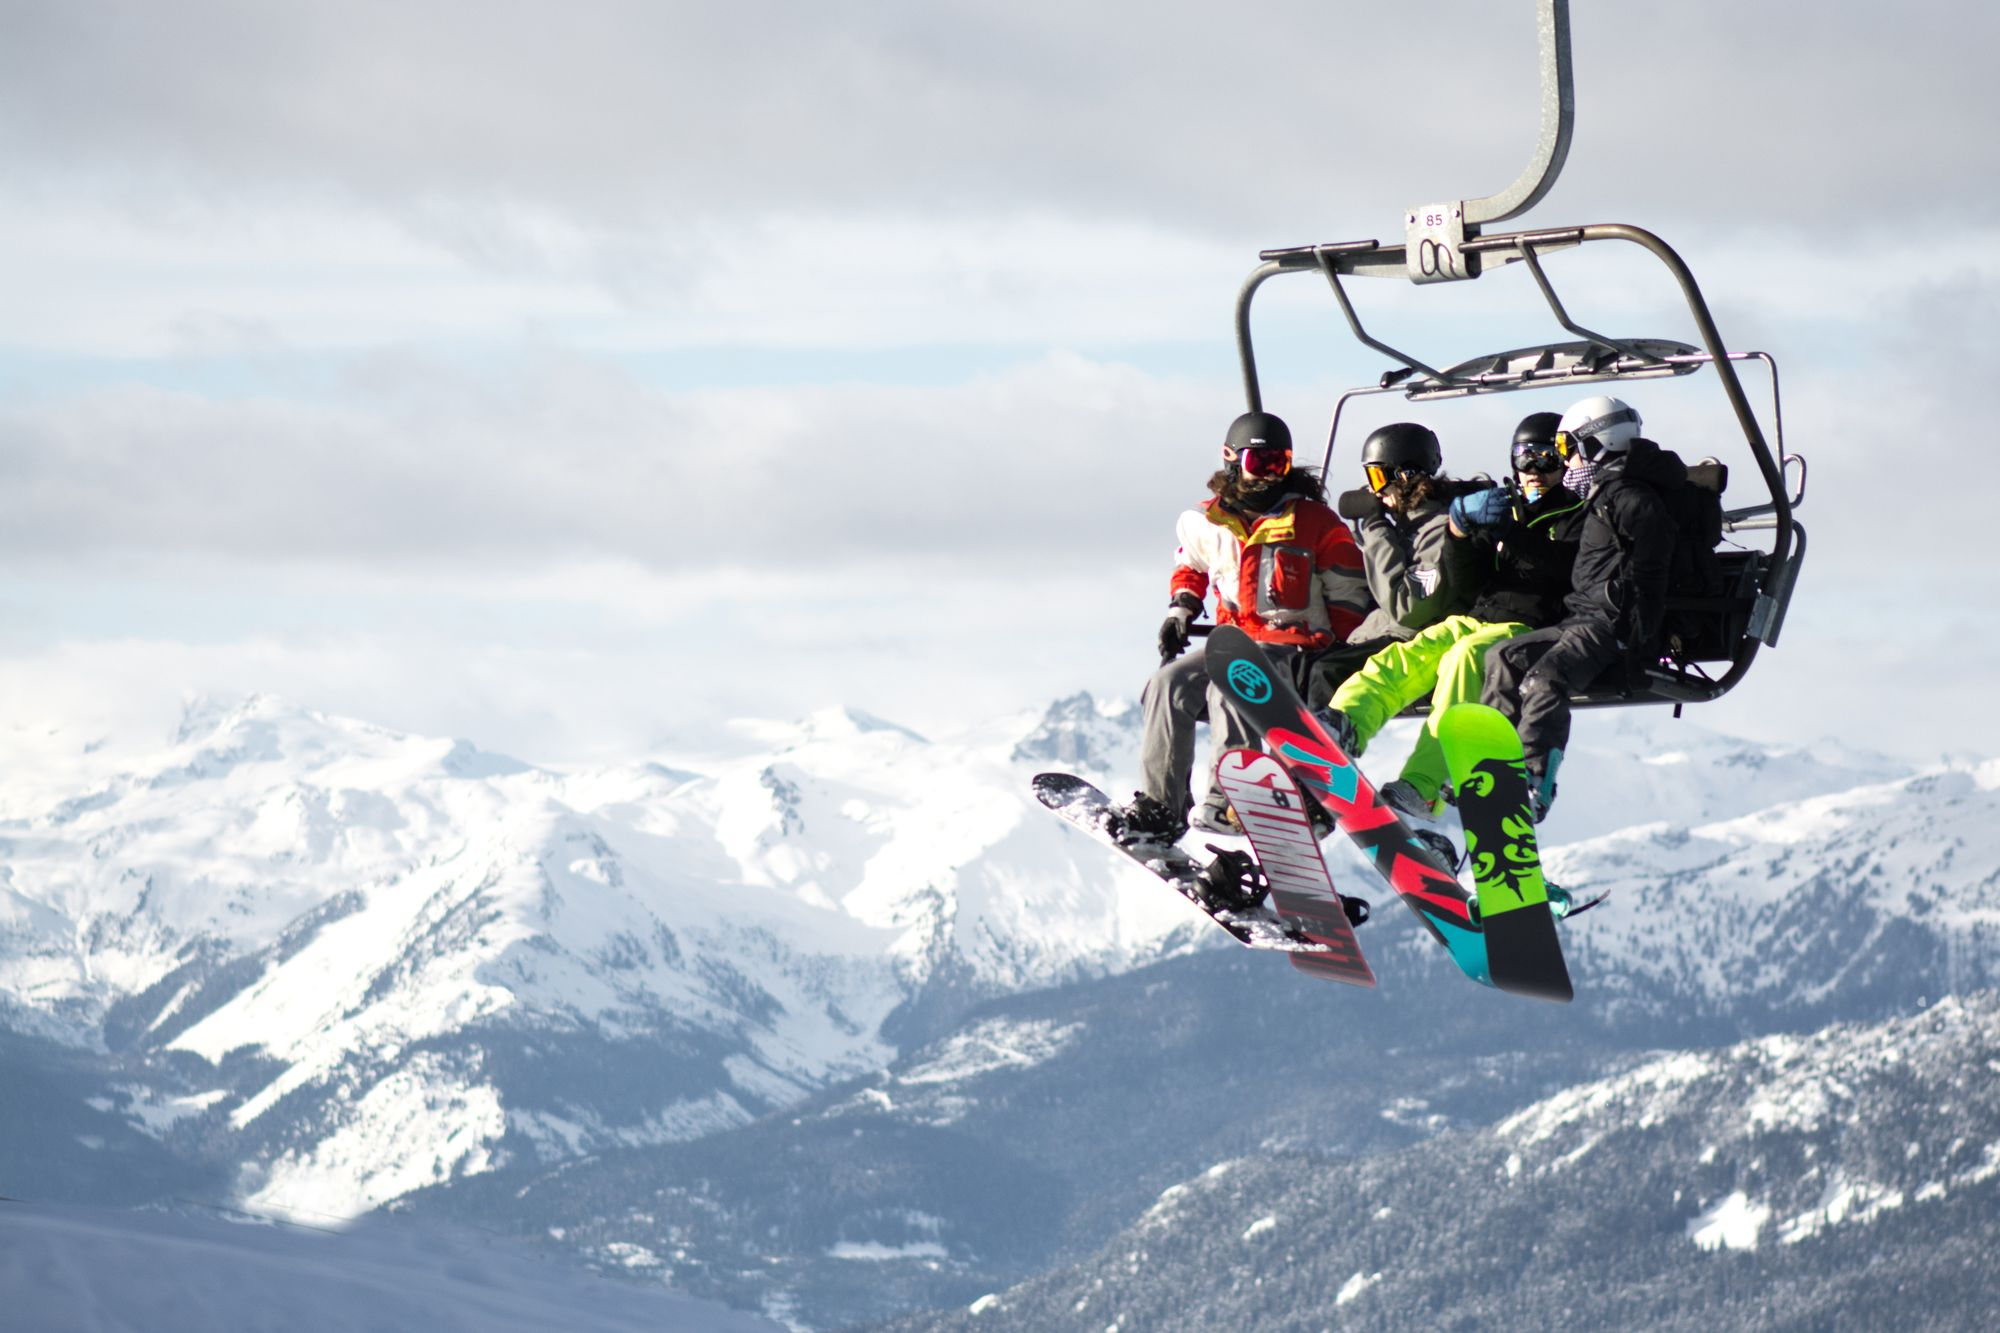 The Best Canadian Ski Resorts that are RV Friendly